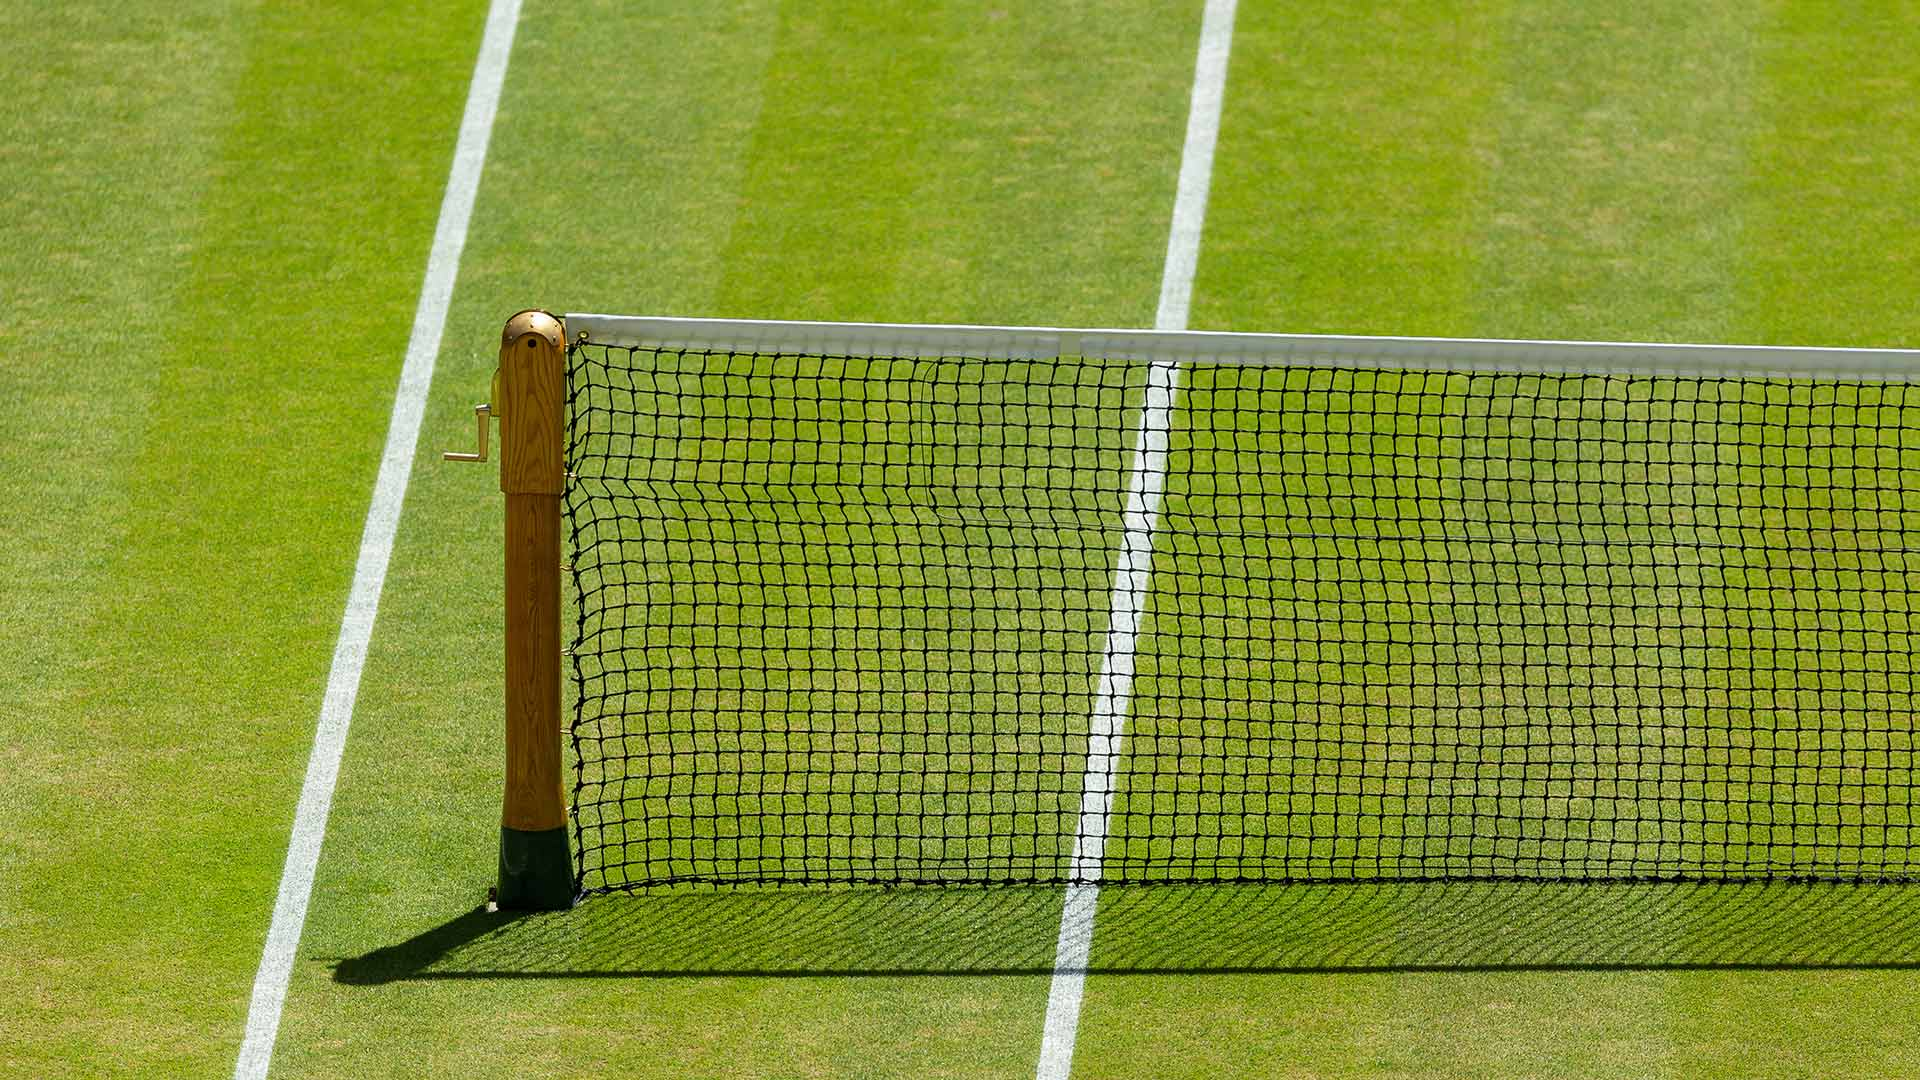 What is a Debenture and Why are they so popular at Wimbledon?